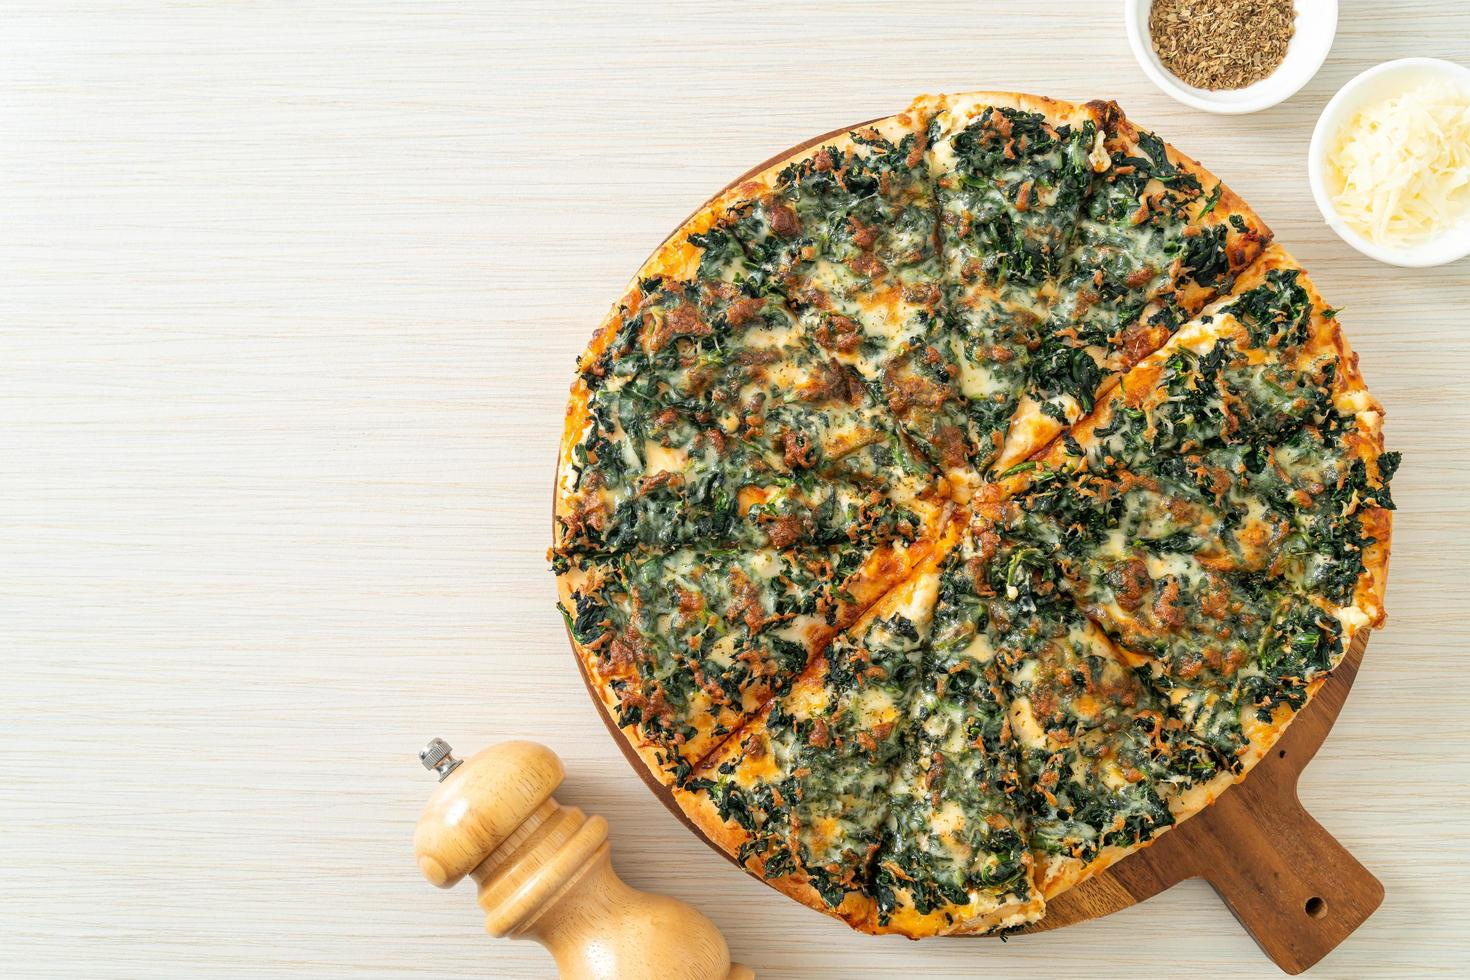 Spinach and cheese pizza on wood tray photo